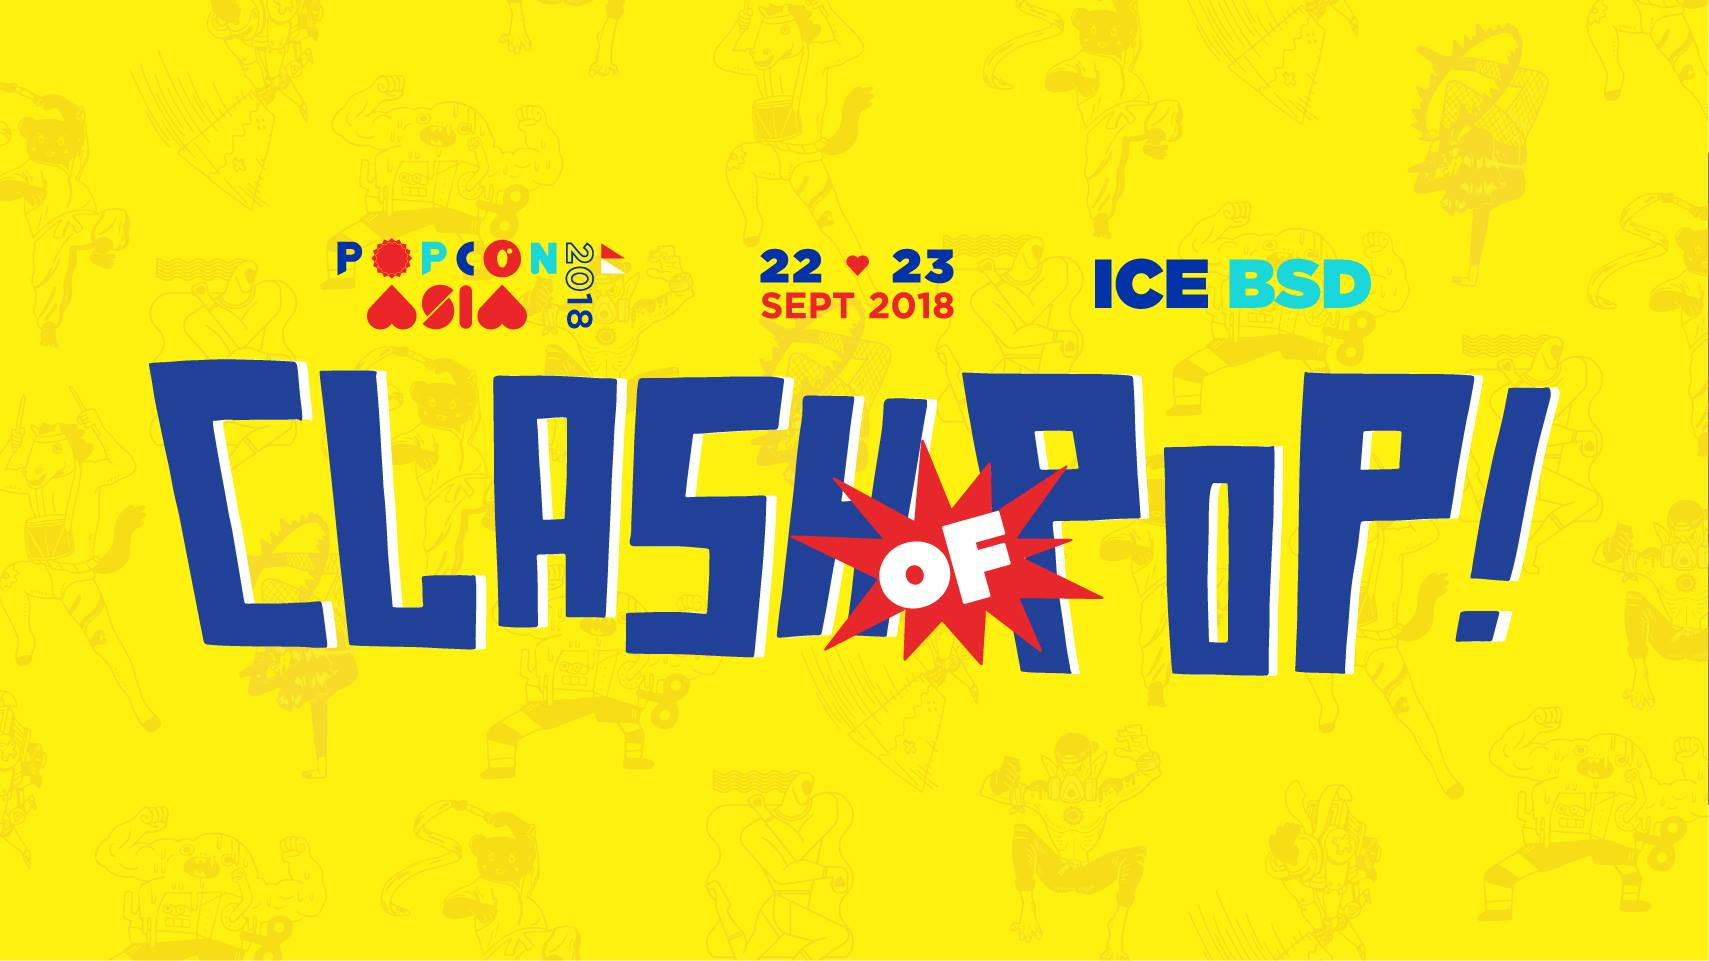 POPCON Asia - ICE BSD City, 22-23 September 2018